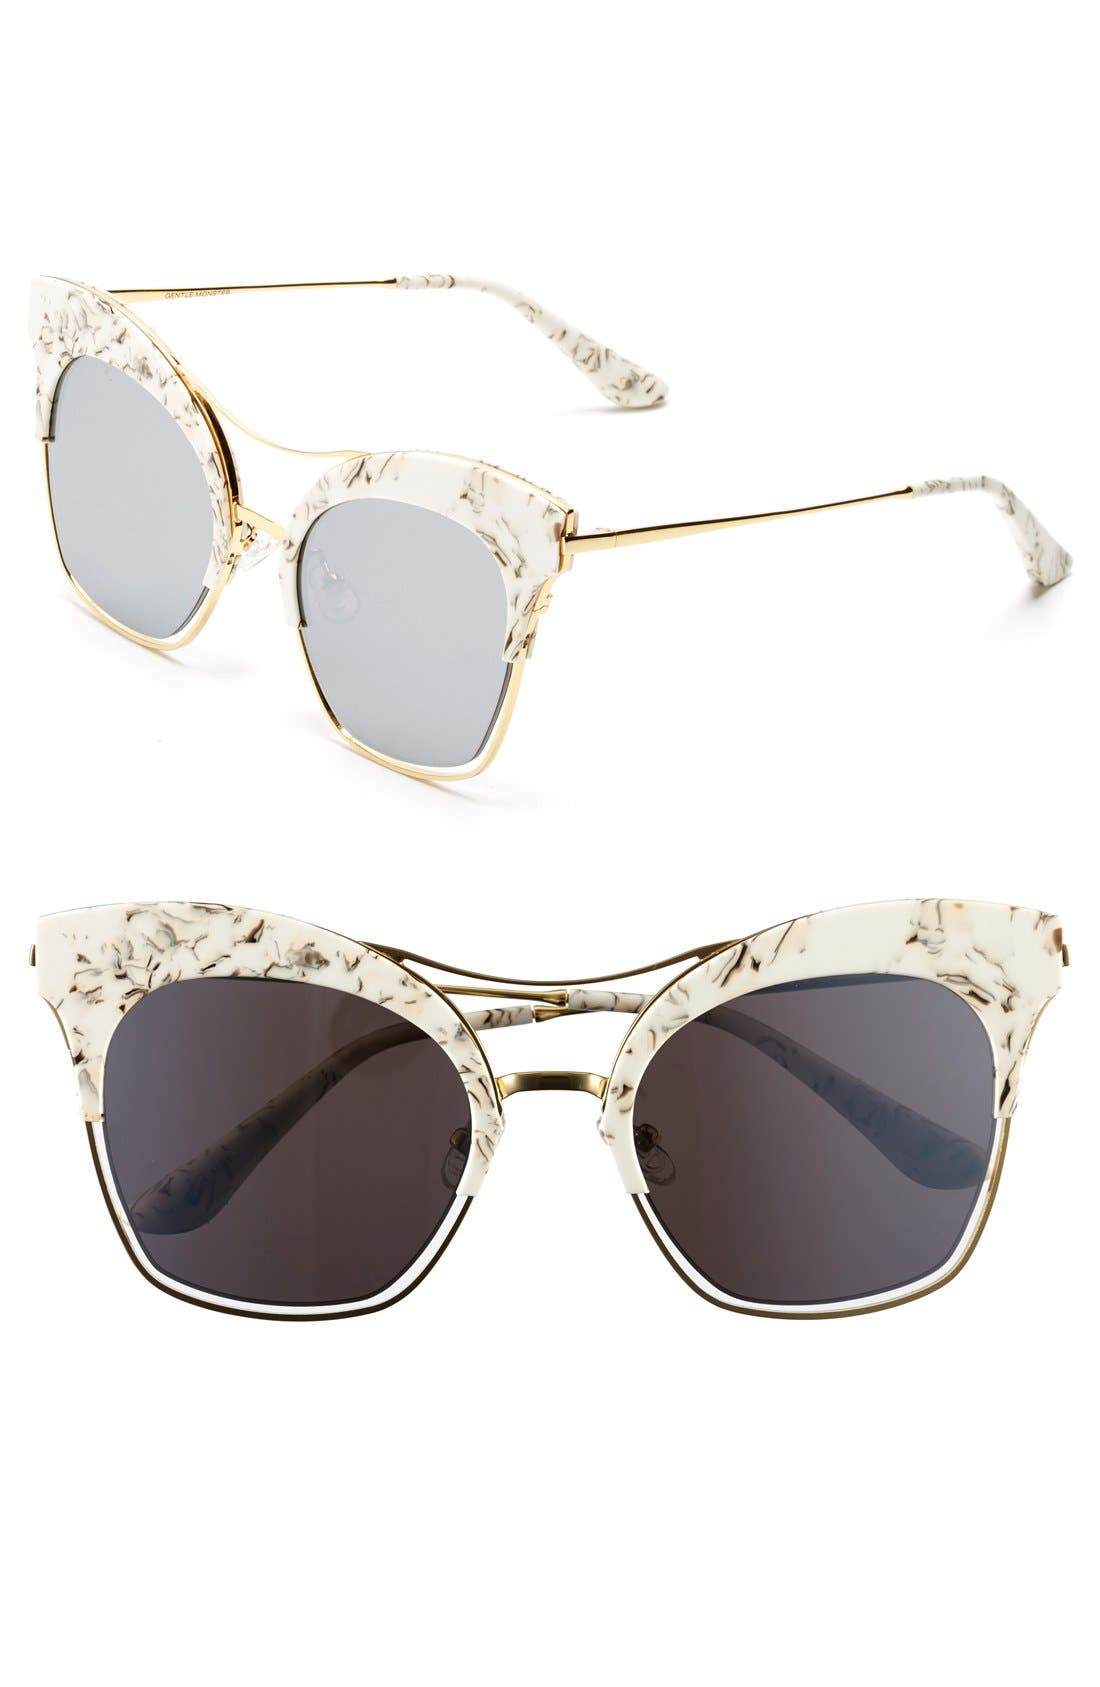 Main Image - Gentle Monster 54mm Cat Eye Sunglasses